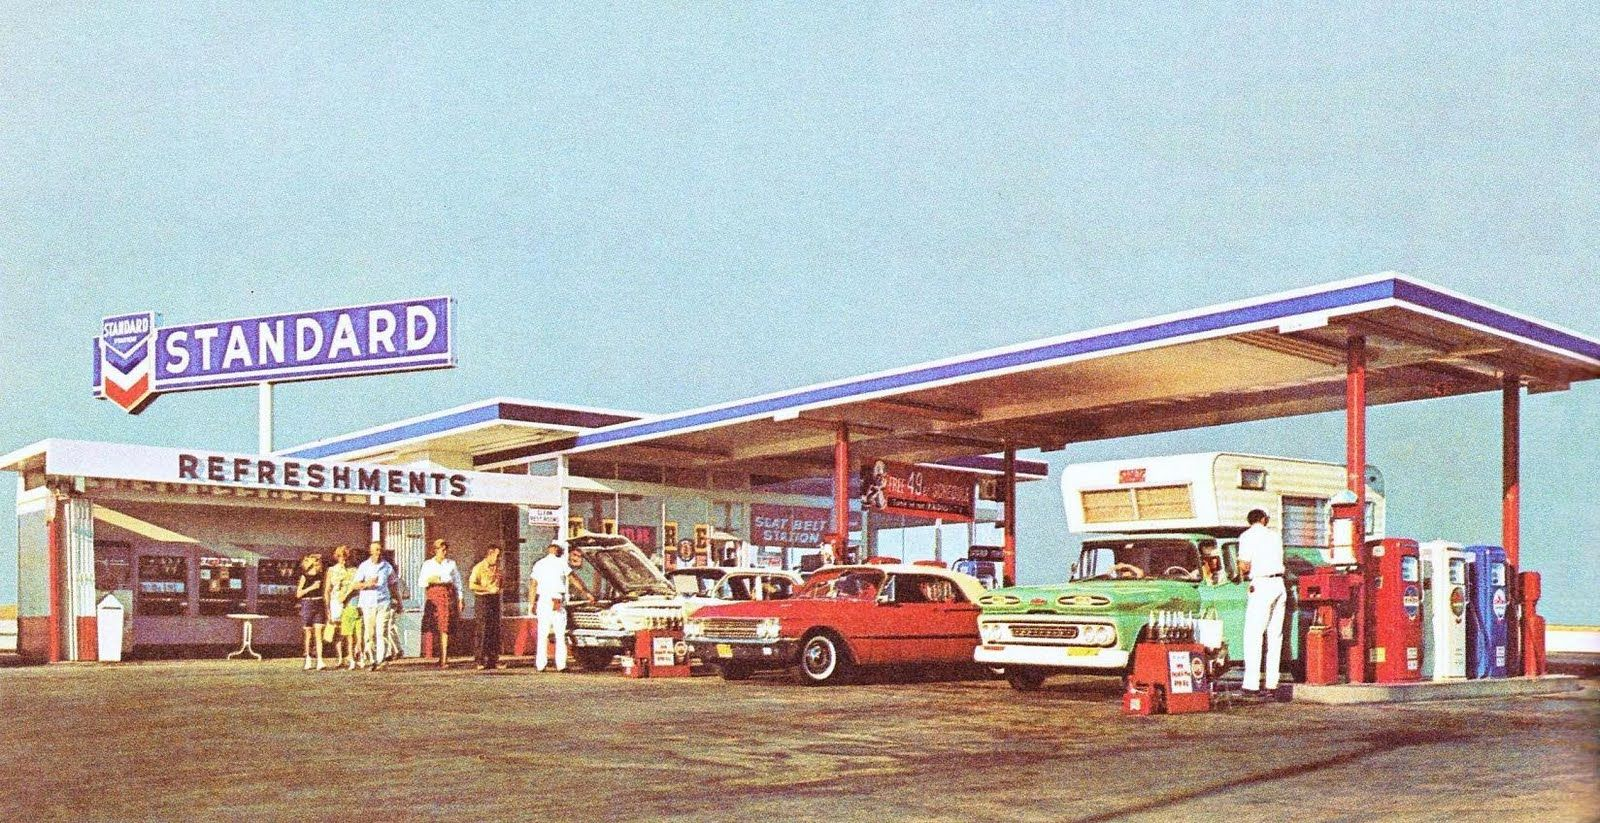 Pleasant Family Shopping: The Golden Age of Gas Stations | Old gas stations,  Gas station, Gas service